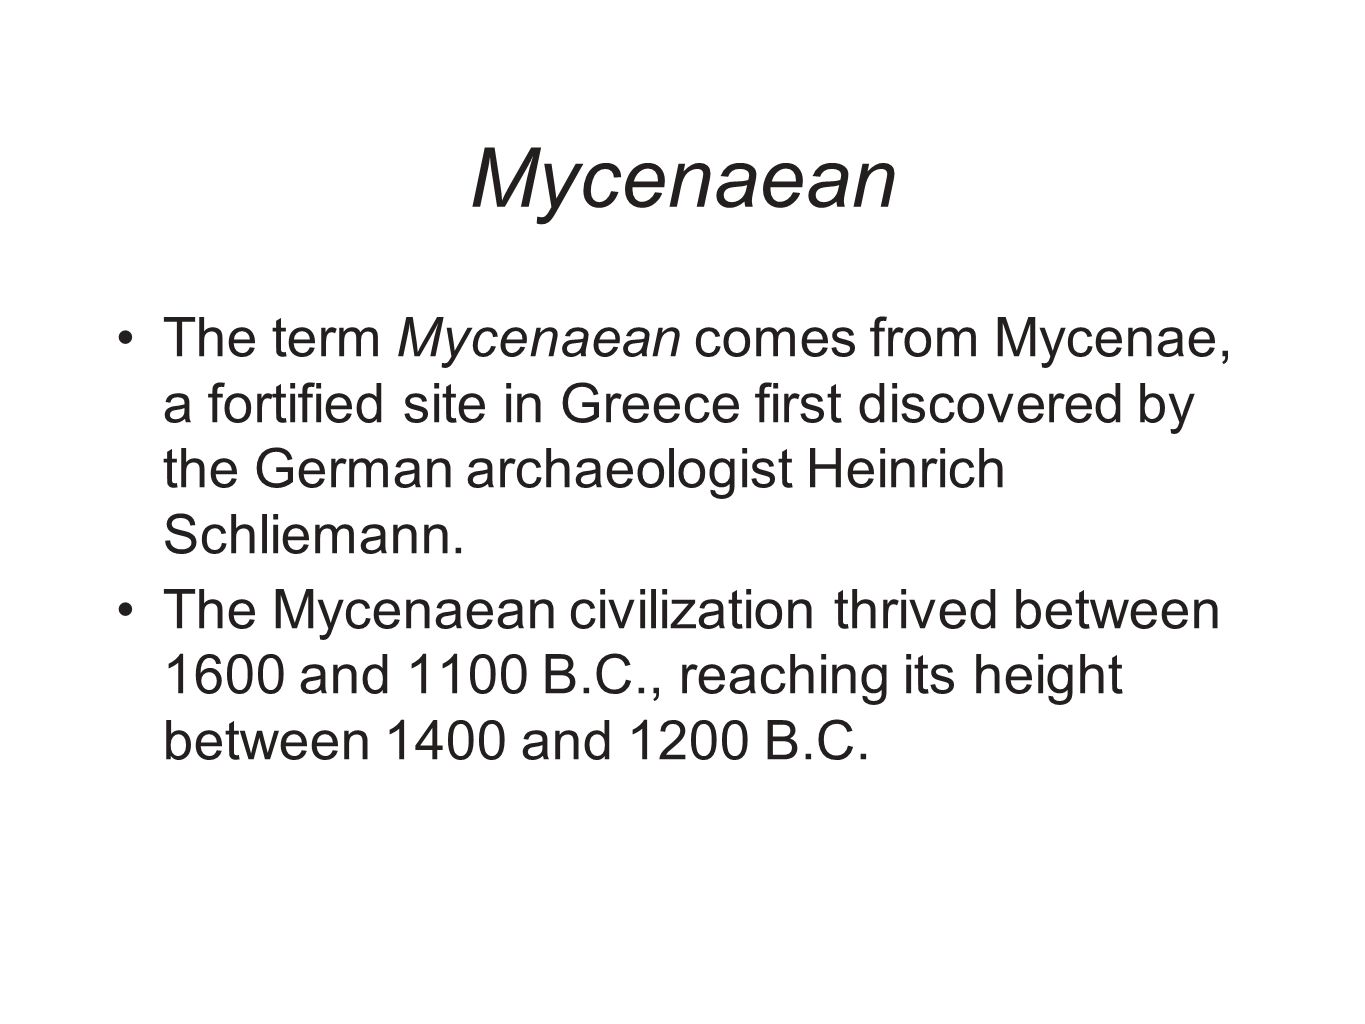 MycenaeanThe term Mycenaean comes from Mycenae, a fortified site in Greece first discovered by the German archaeologist Heinrich Schliemann.